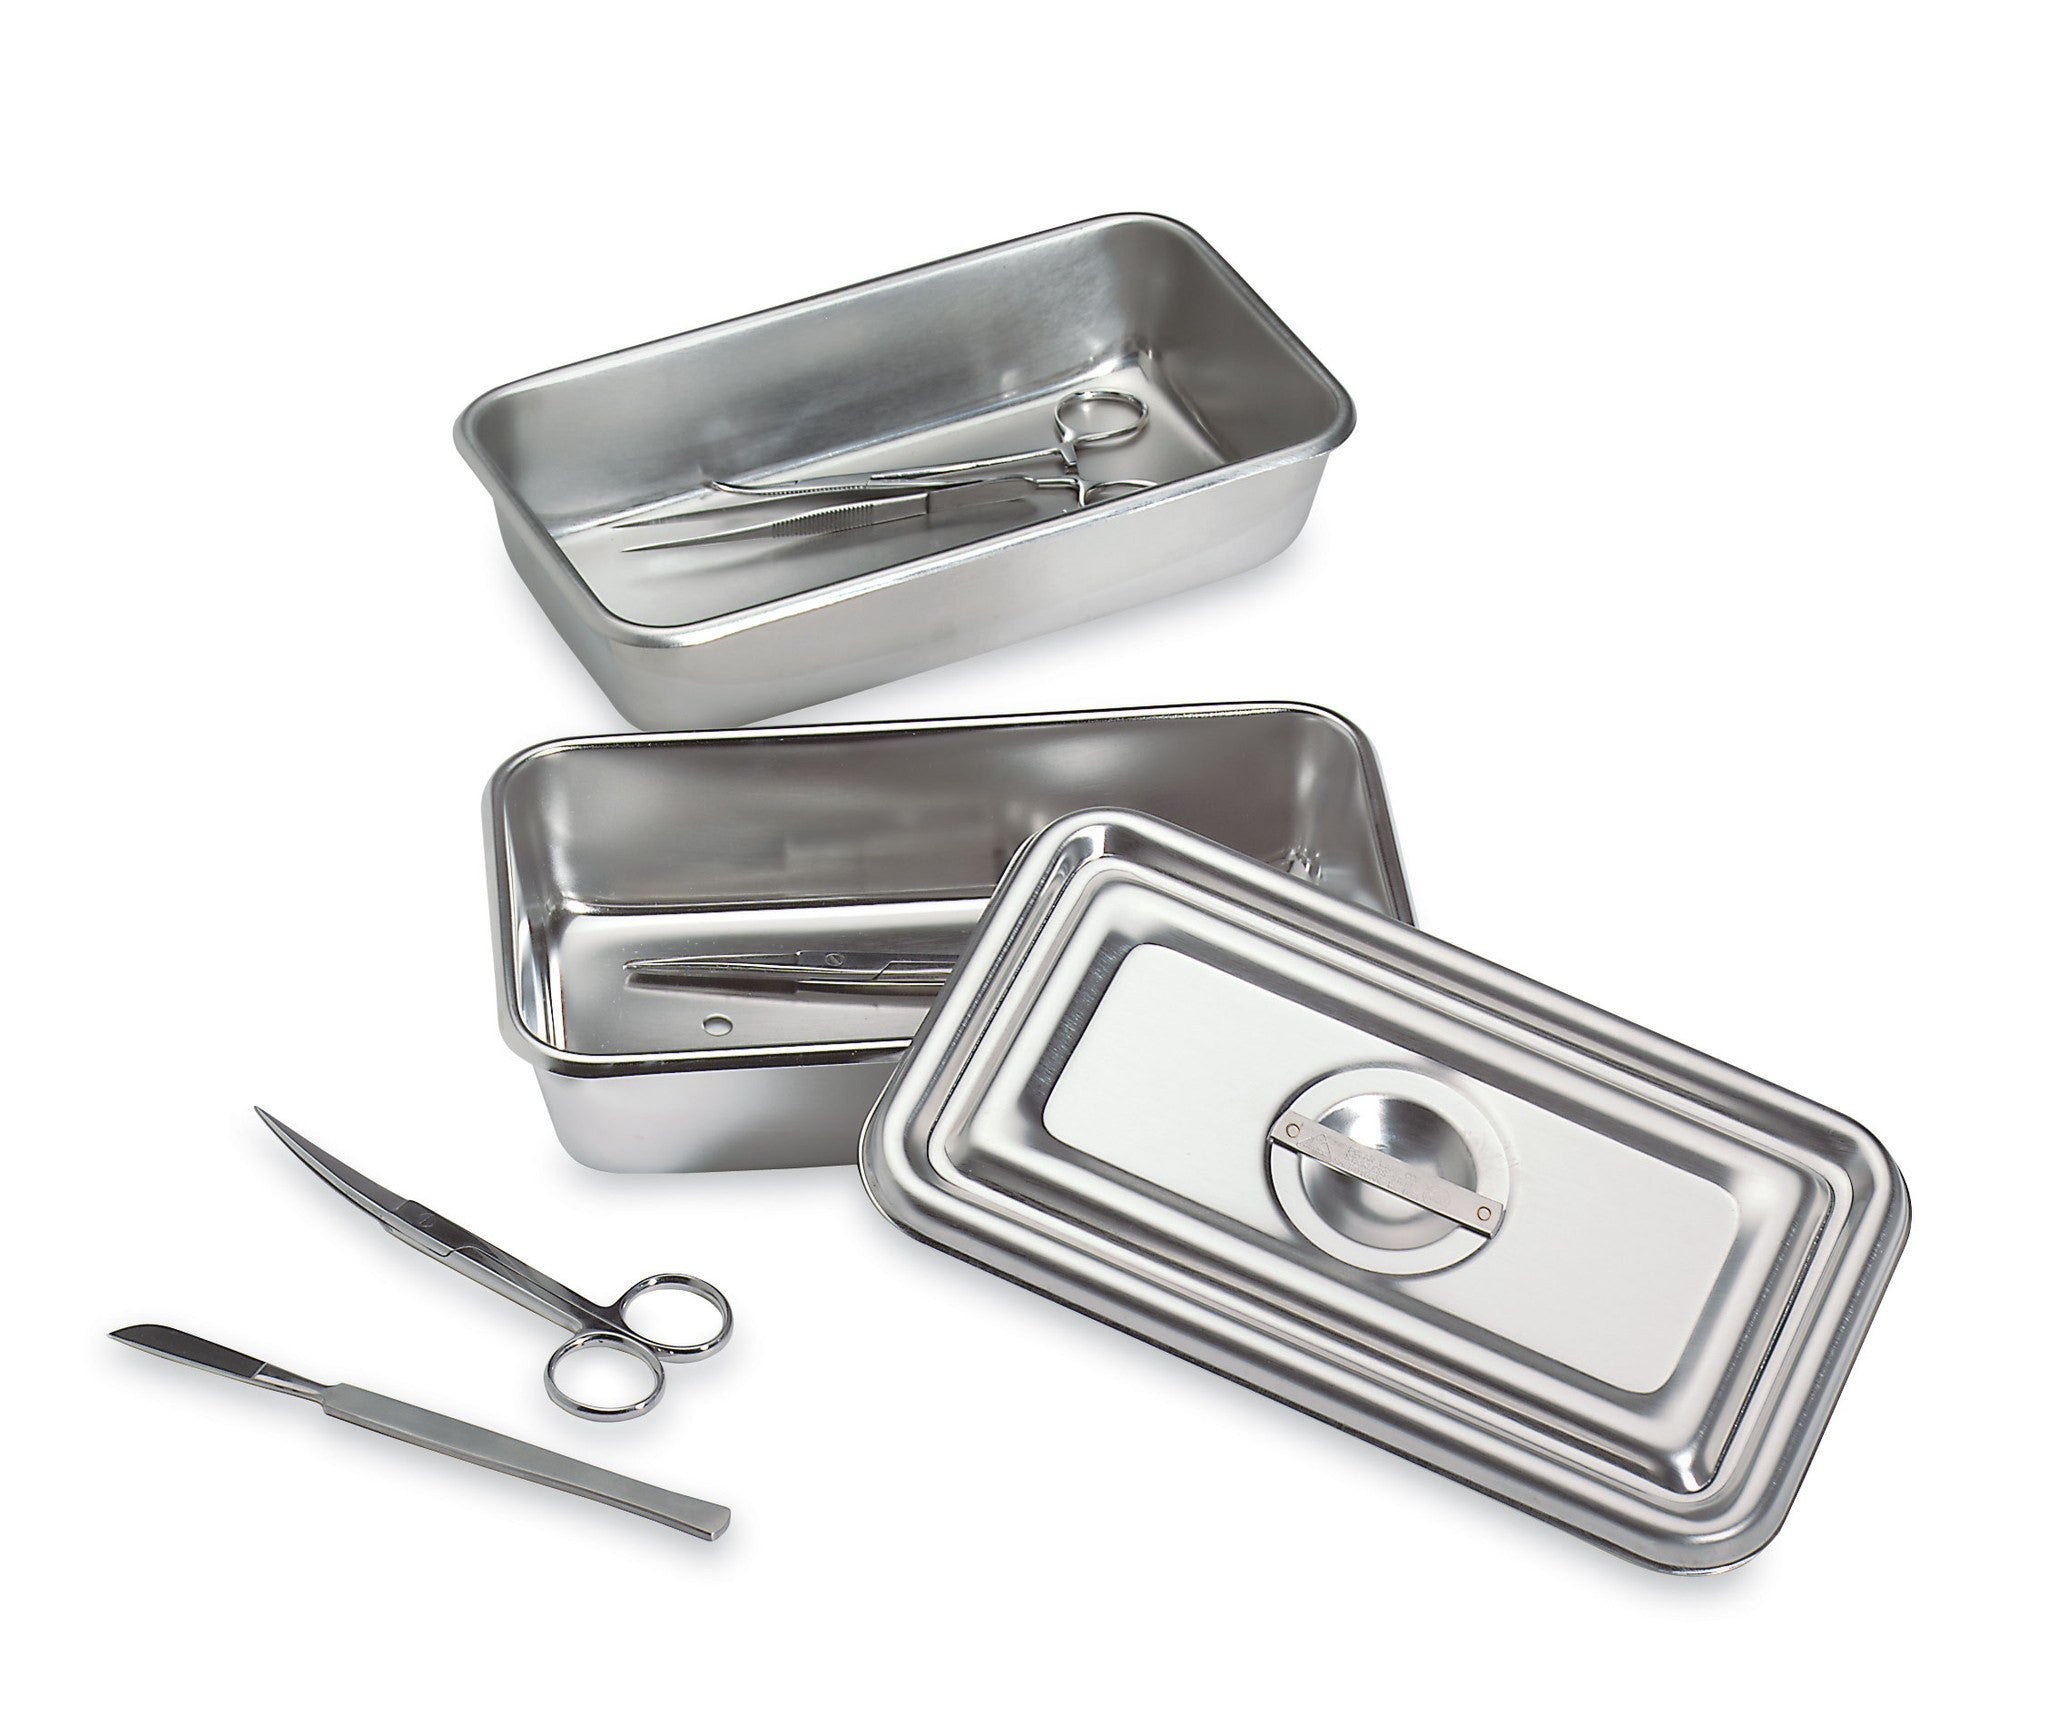 Stainless Steel Instrument Tray with Lid for Surgical Instruments by Tech-Med Services | Medical Supplies